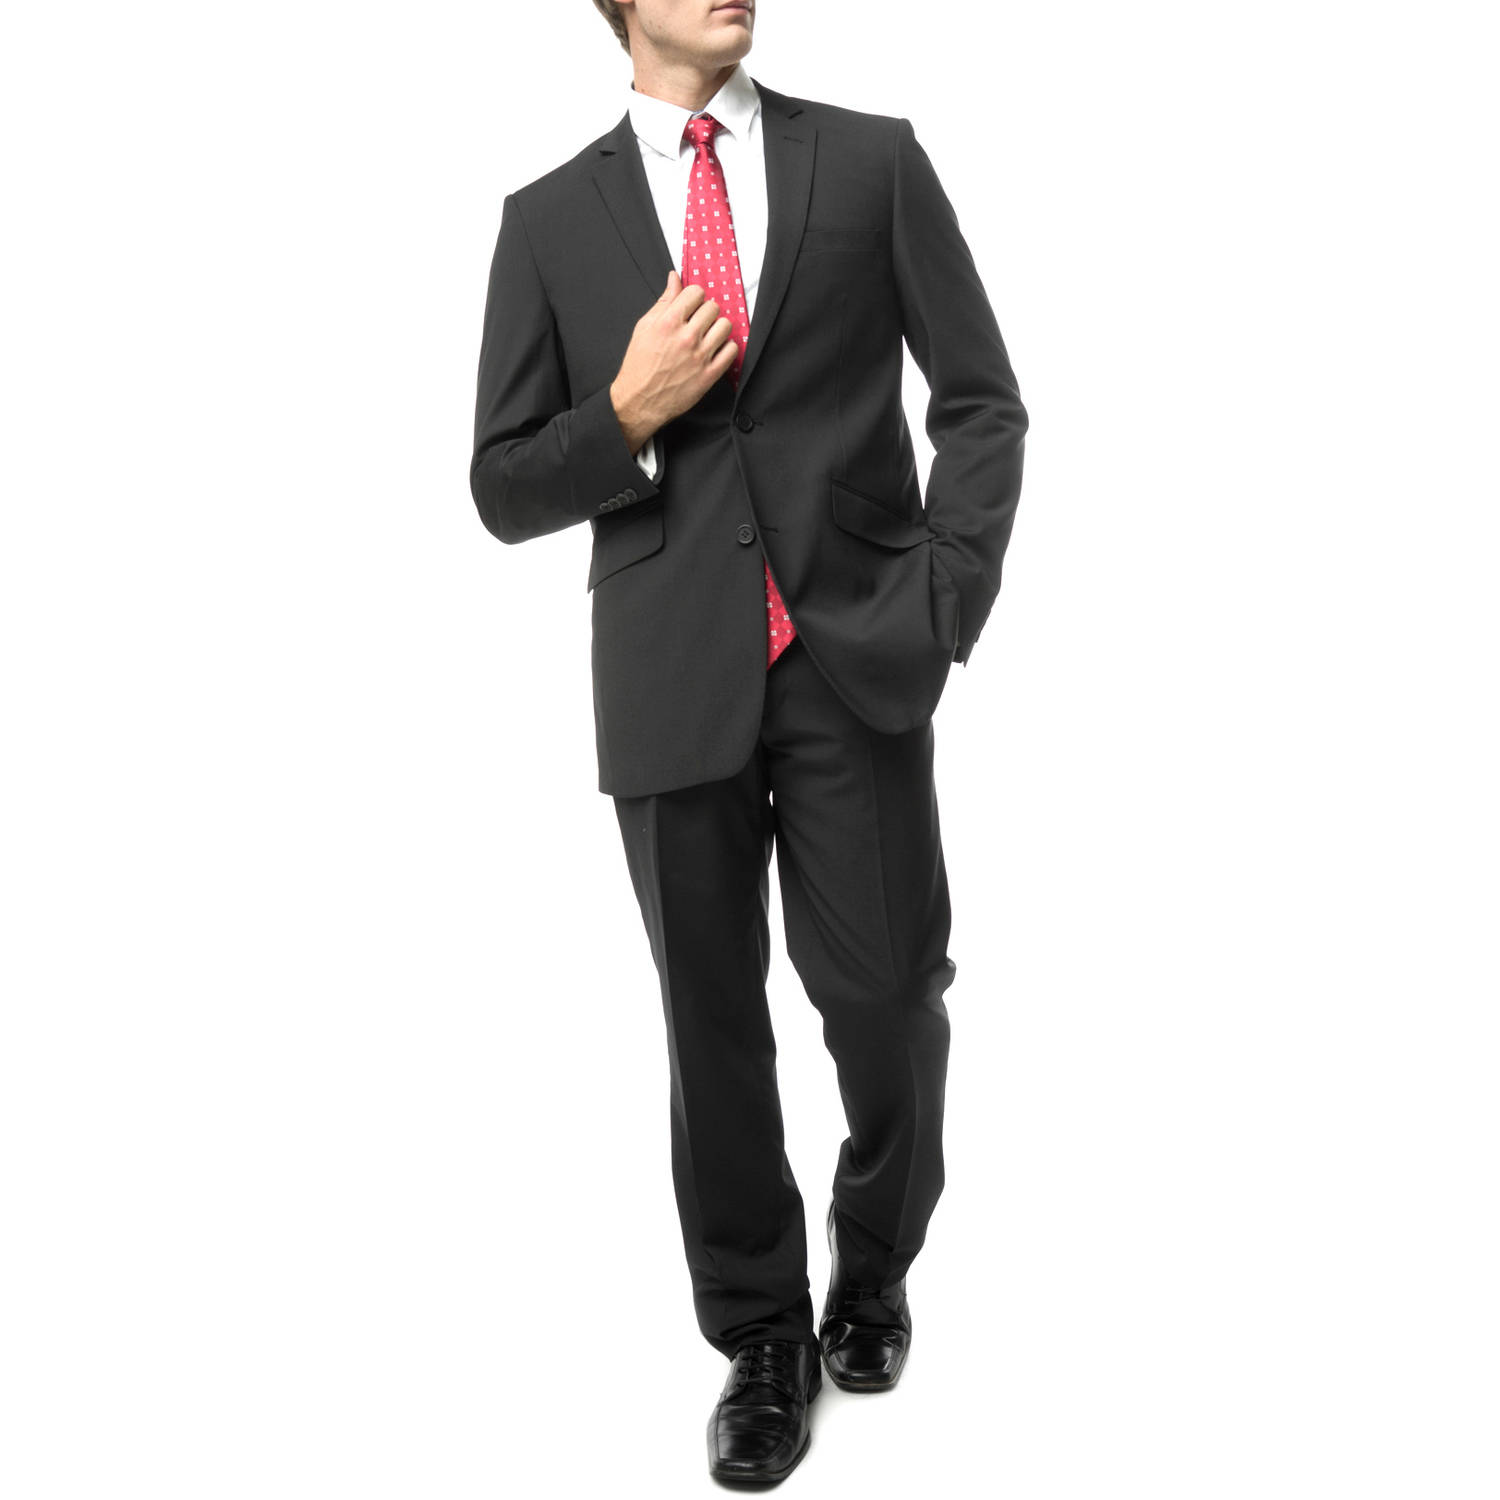 Verno Men's Black Slim Fit Italian Styled Two Piece Suit